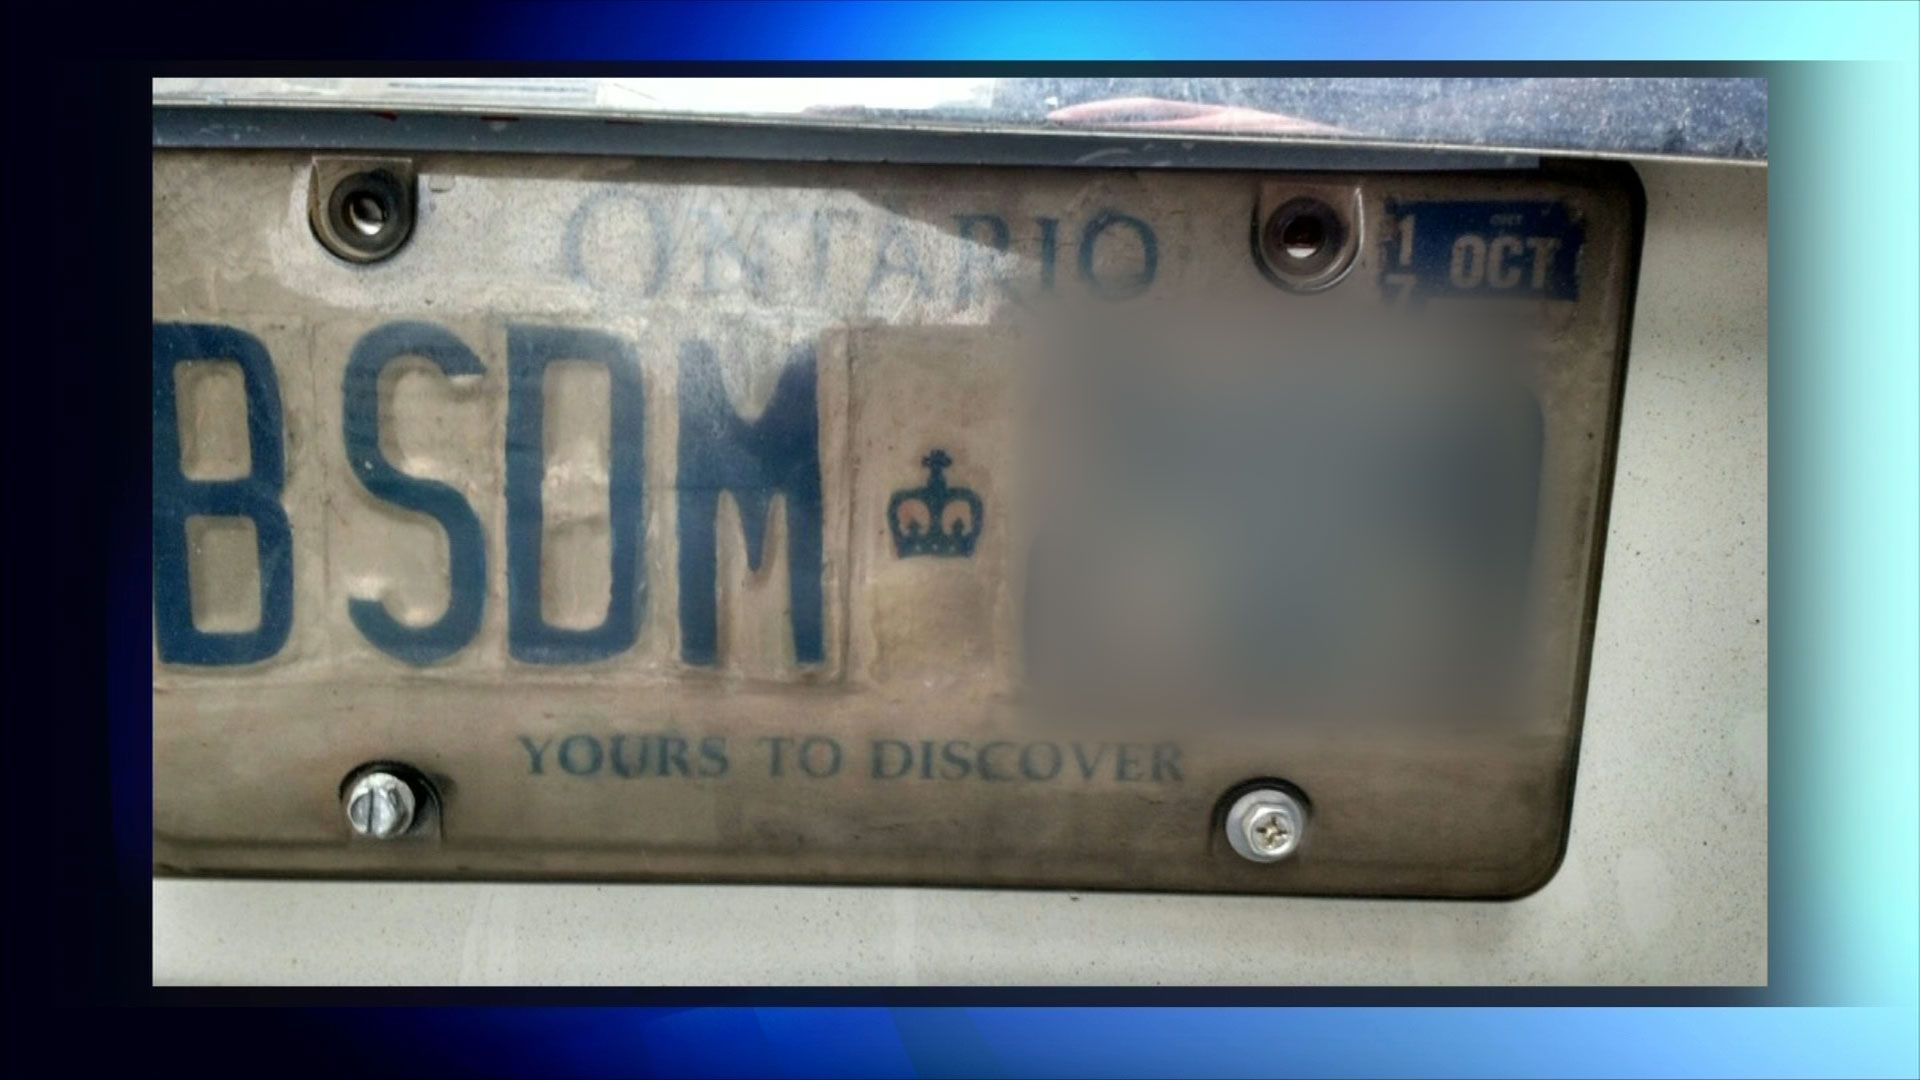 Are scammers using fake licence plates to put you on the hook for tickets? - CityNews